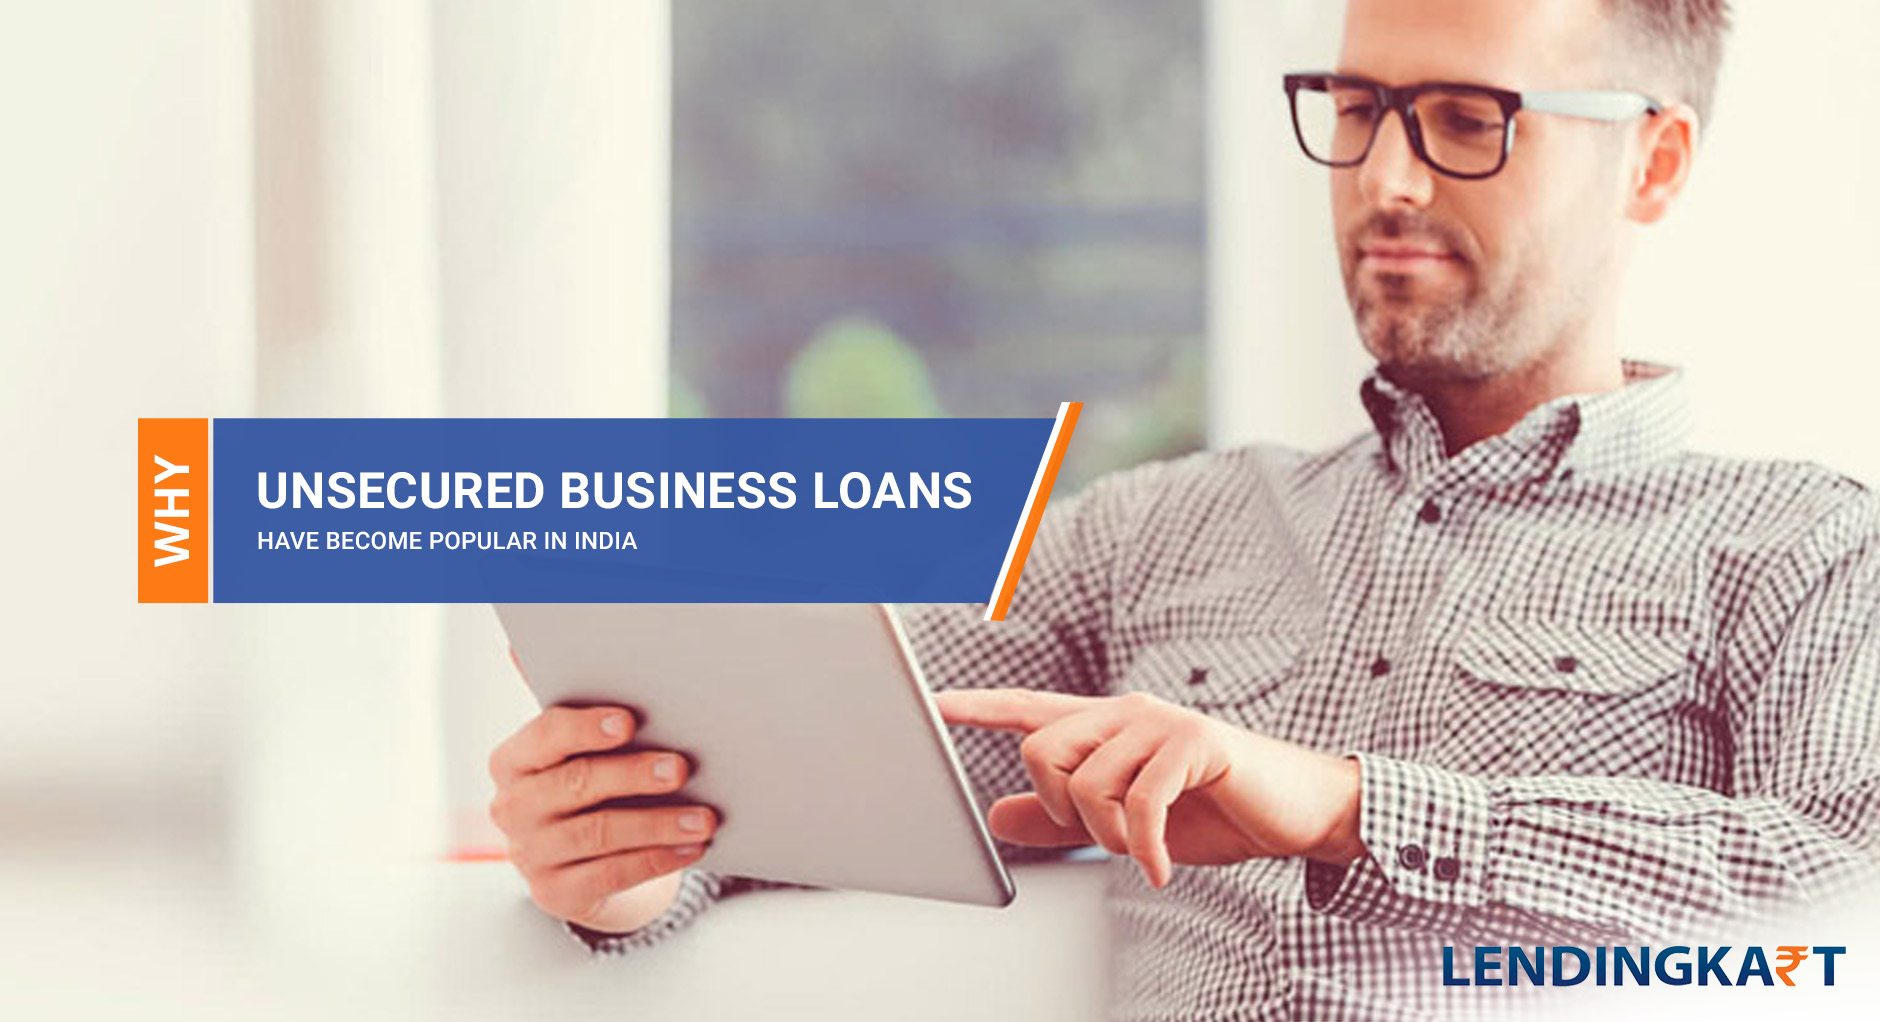 why unsecured business loans have become popular in india